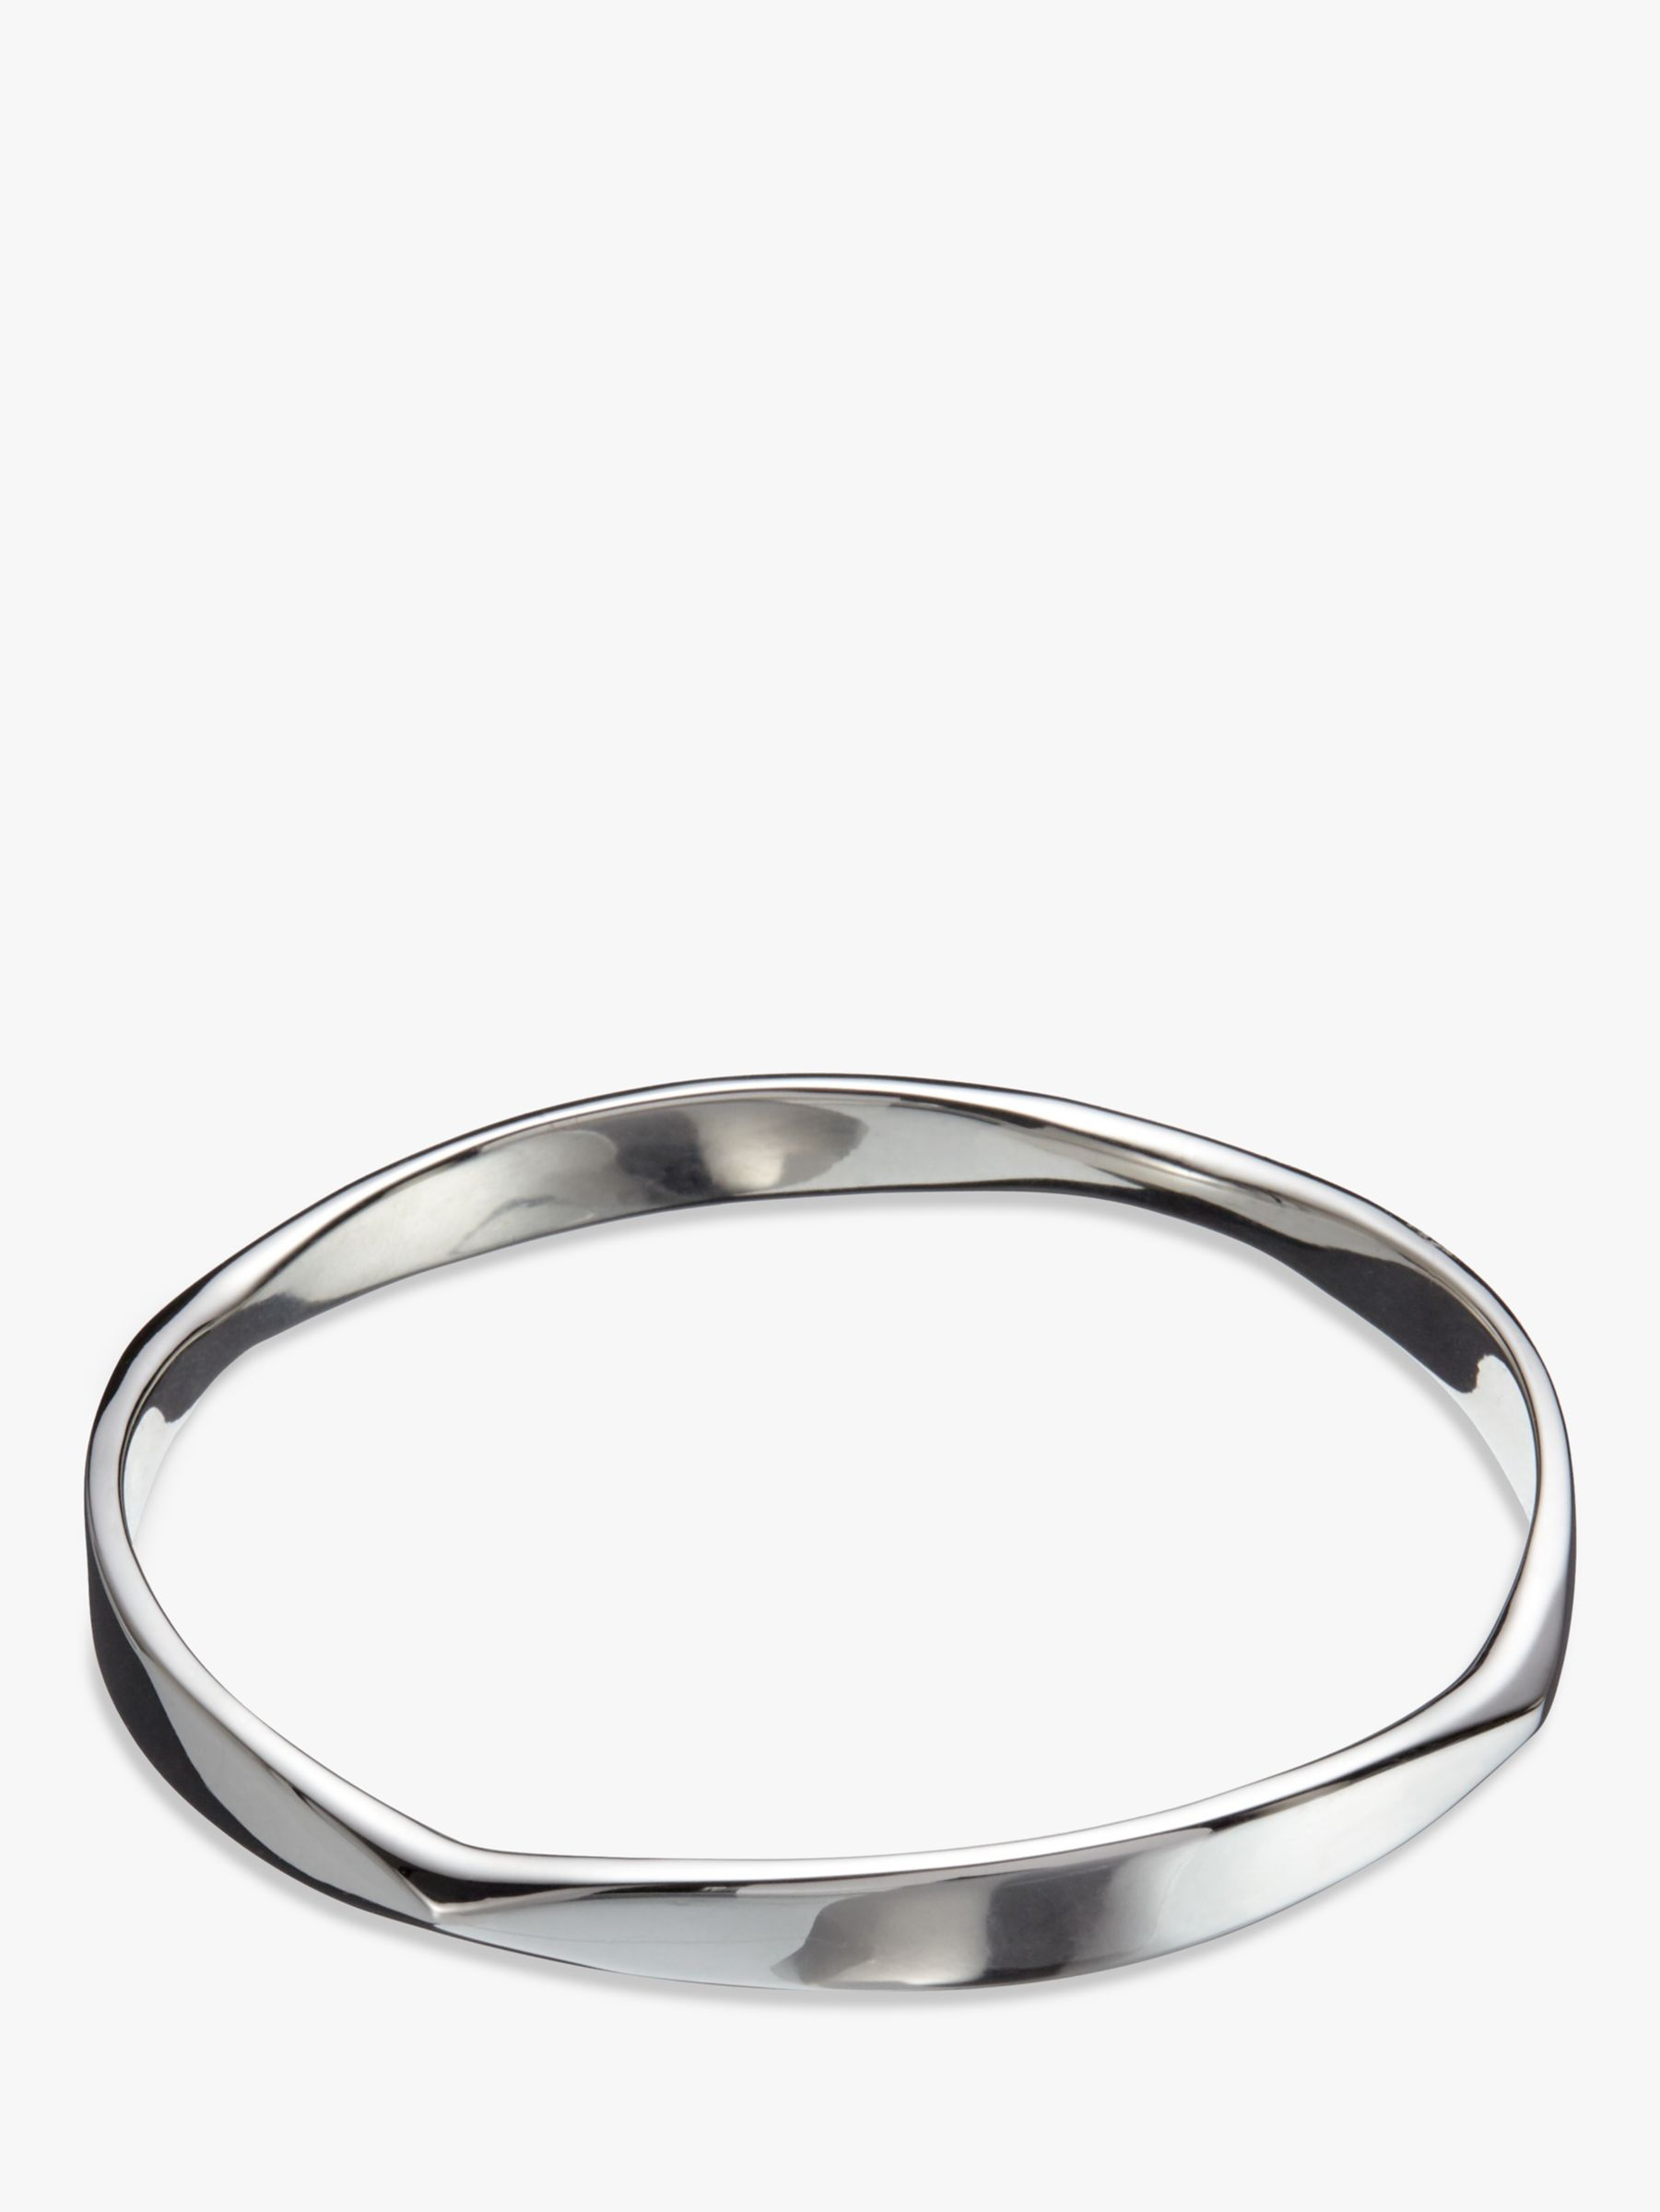 Andea Andea Sterling Silver Polished Curve Bangle, Silver